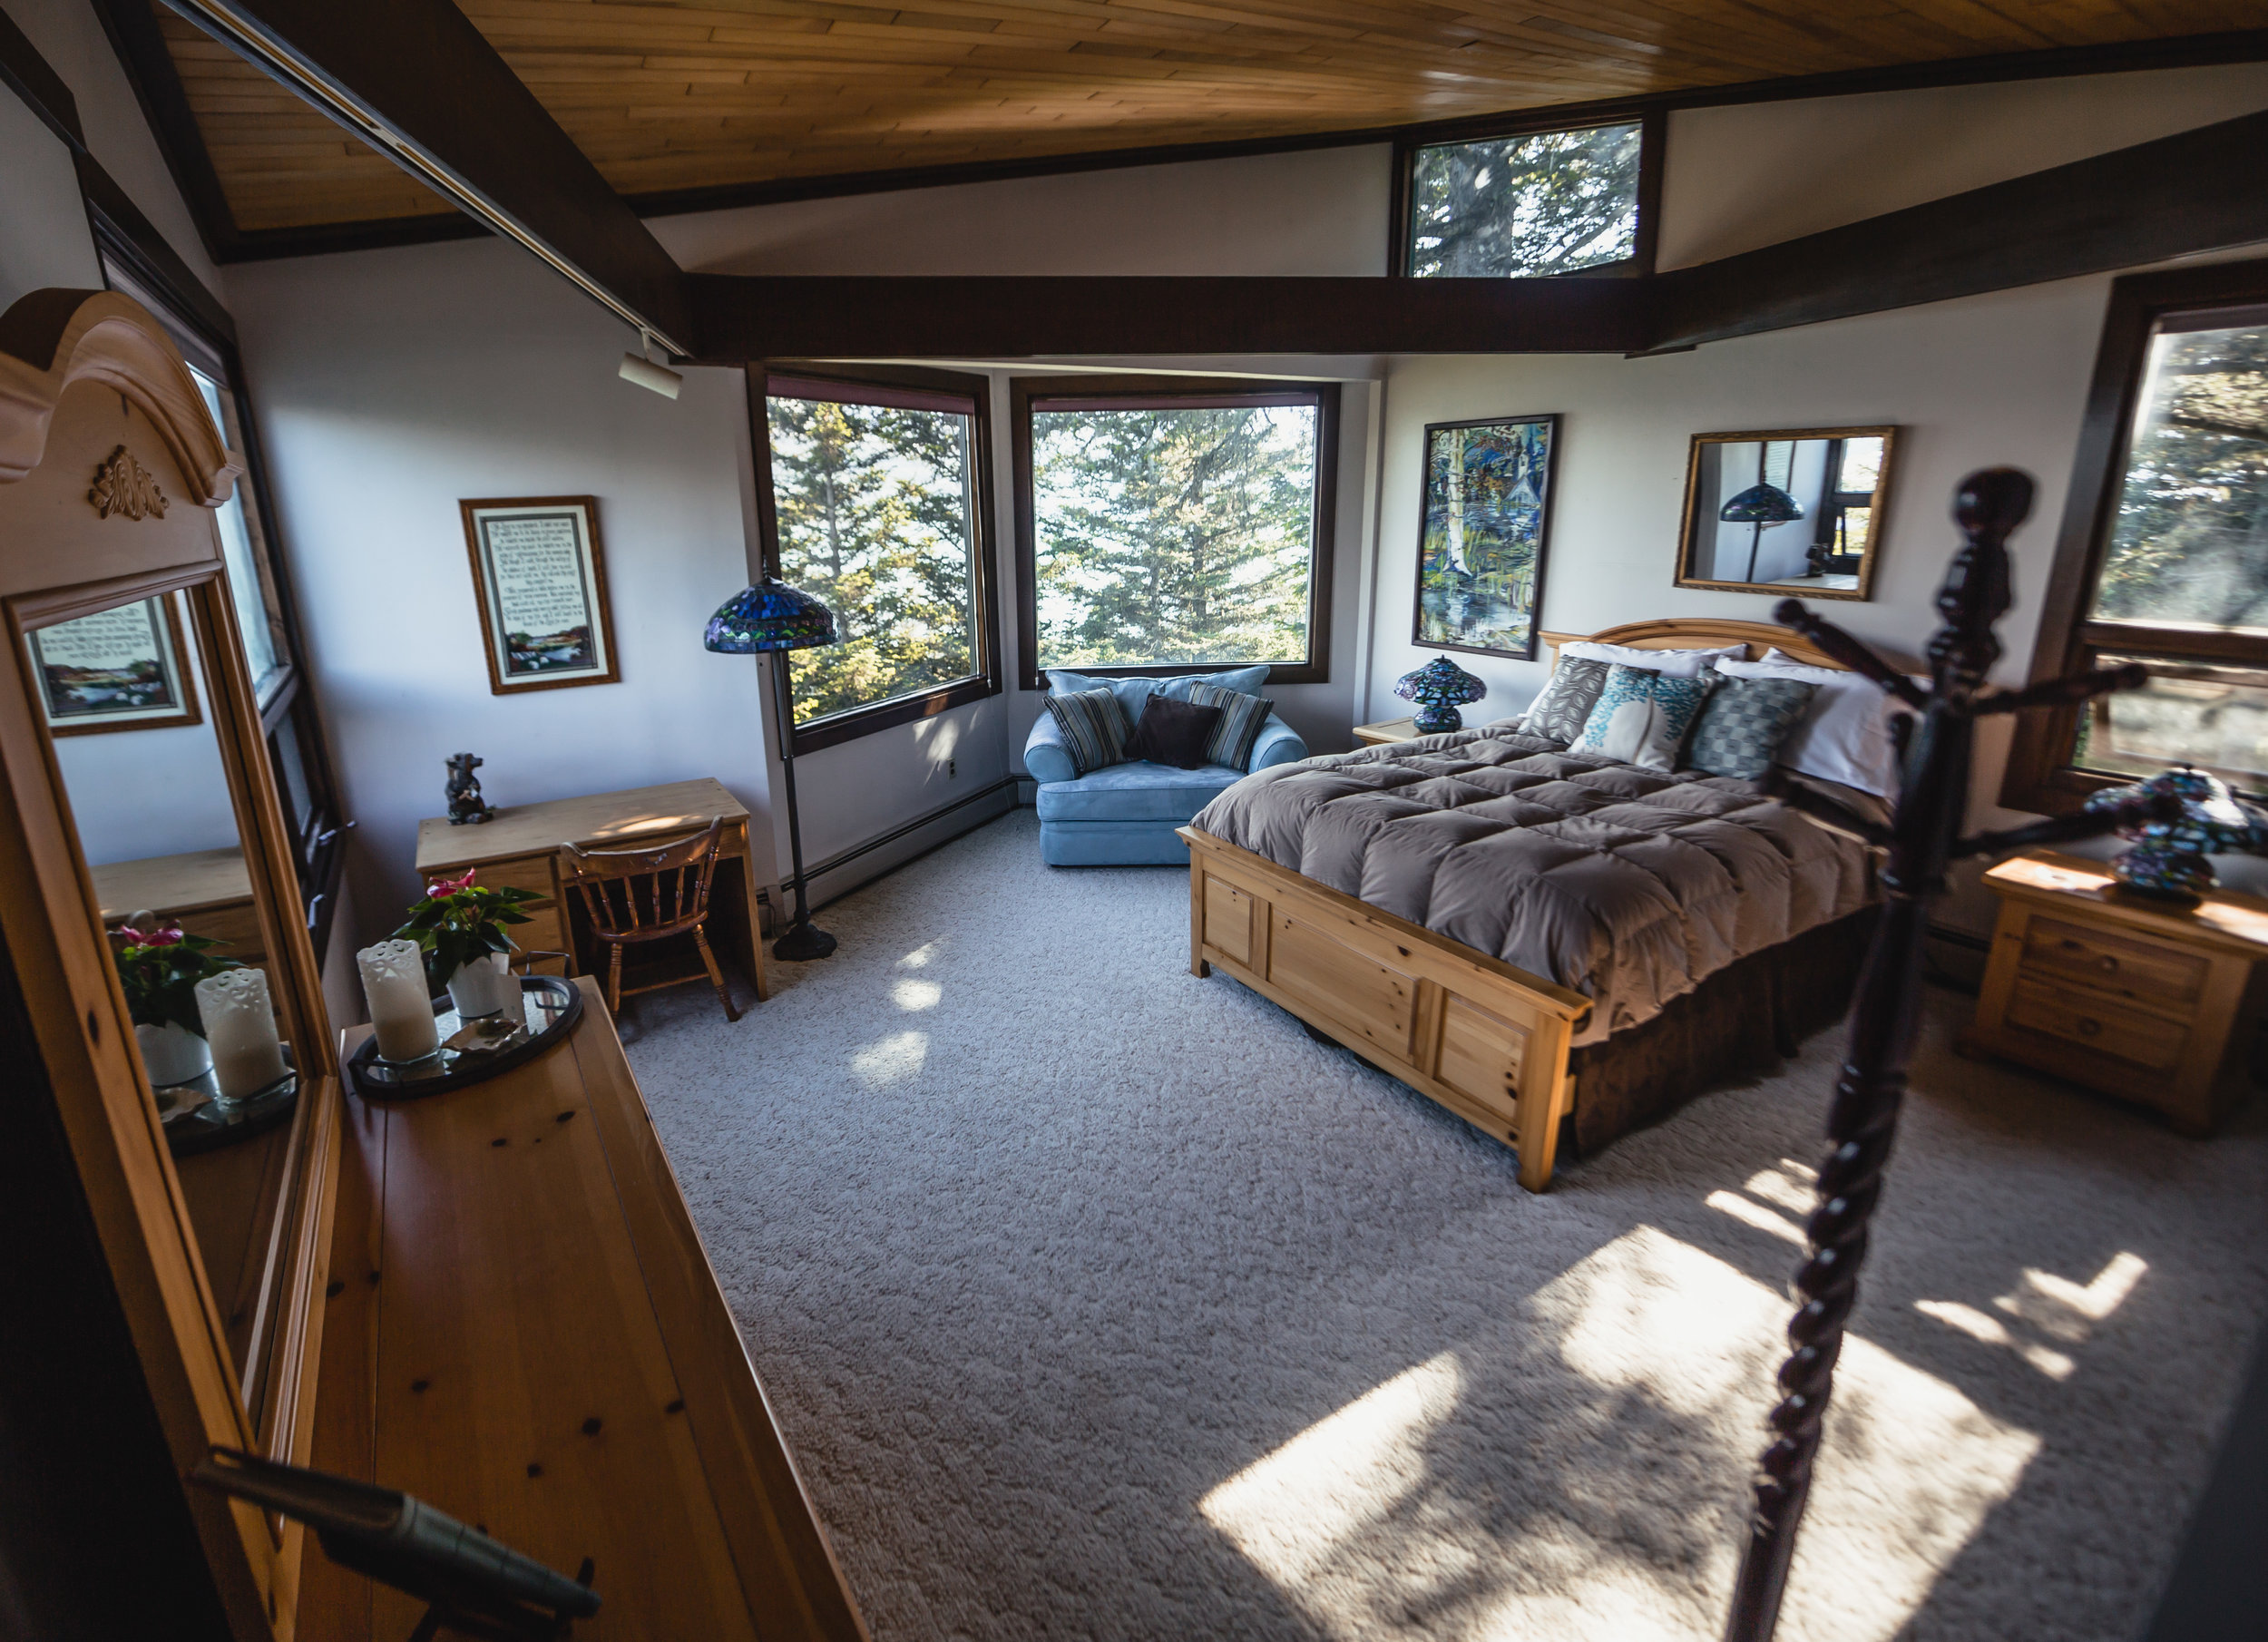 2019-06-06_The_Timber_House_Photo (23 of 37).jpg